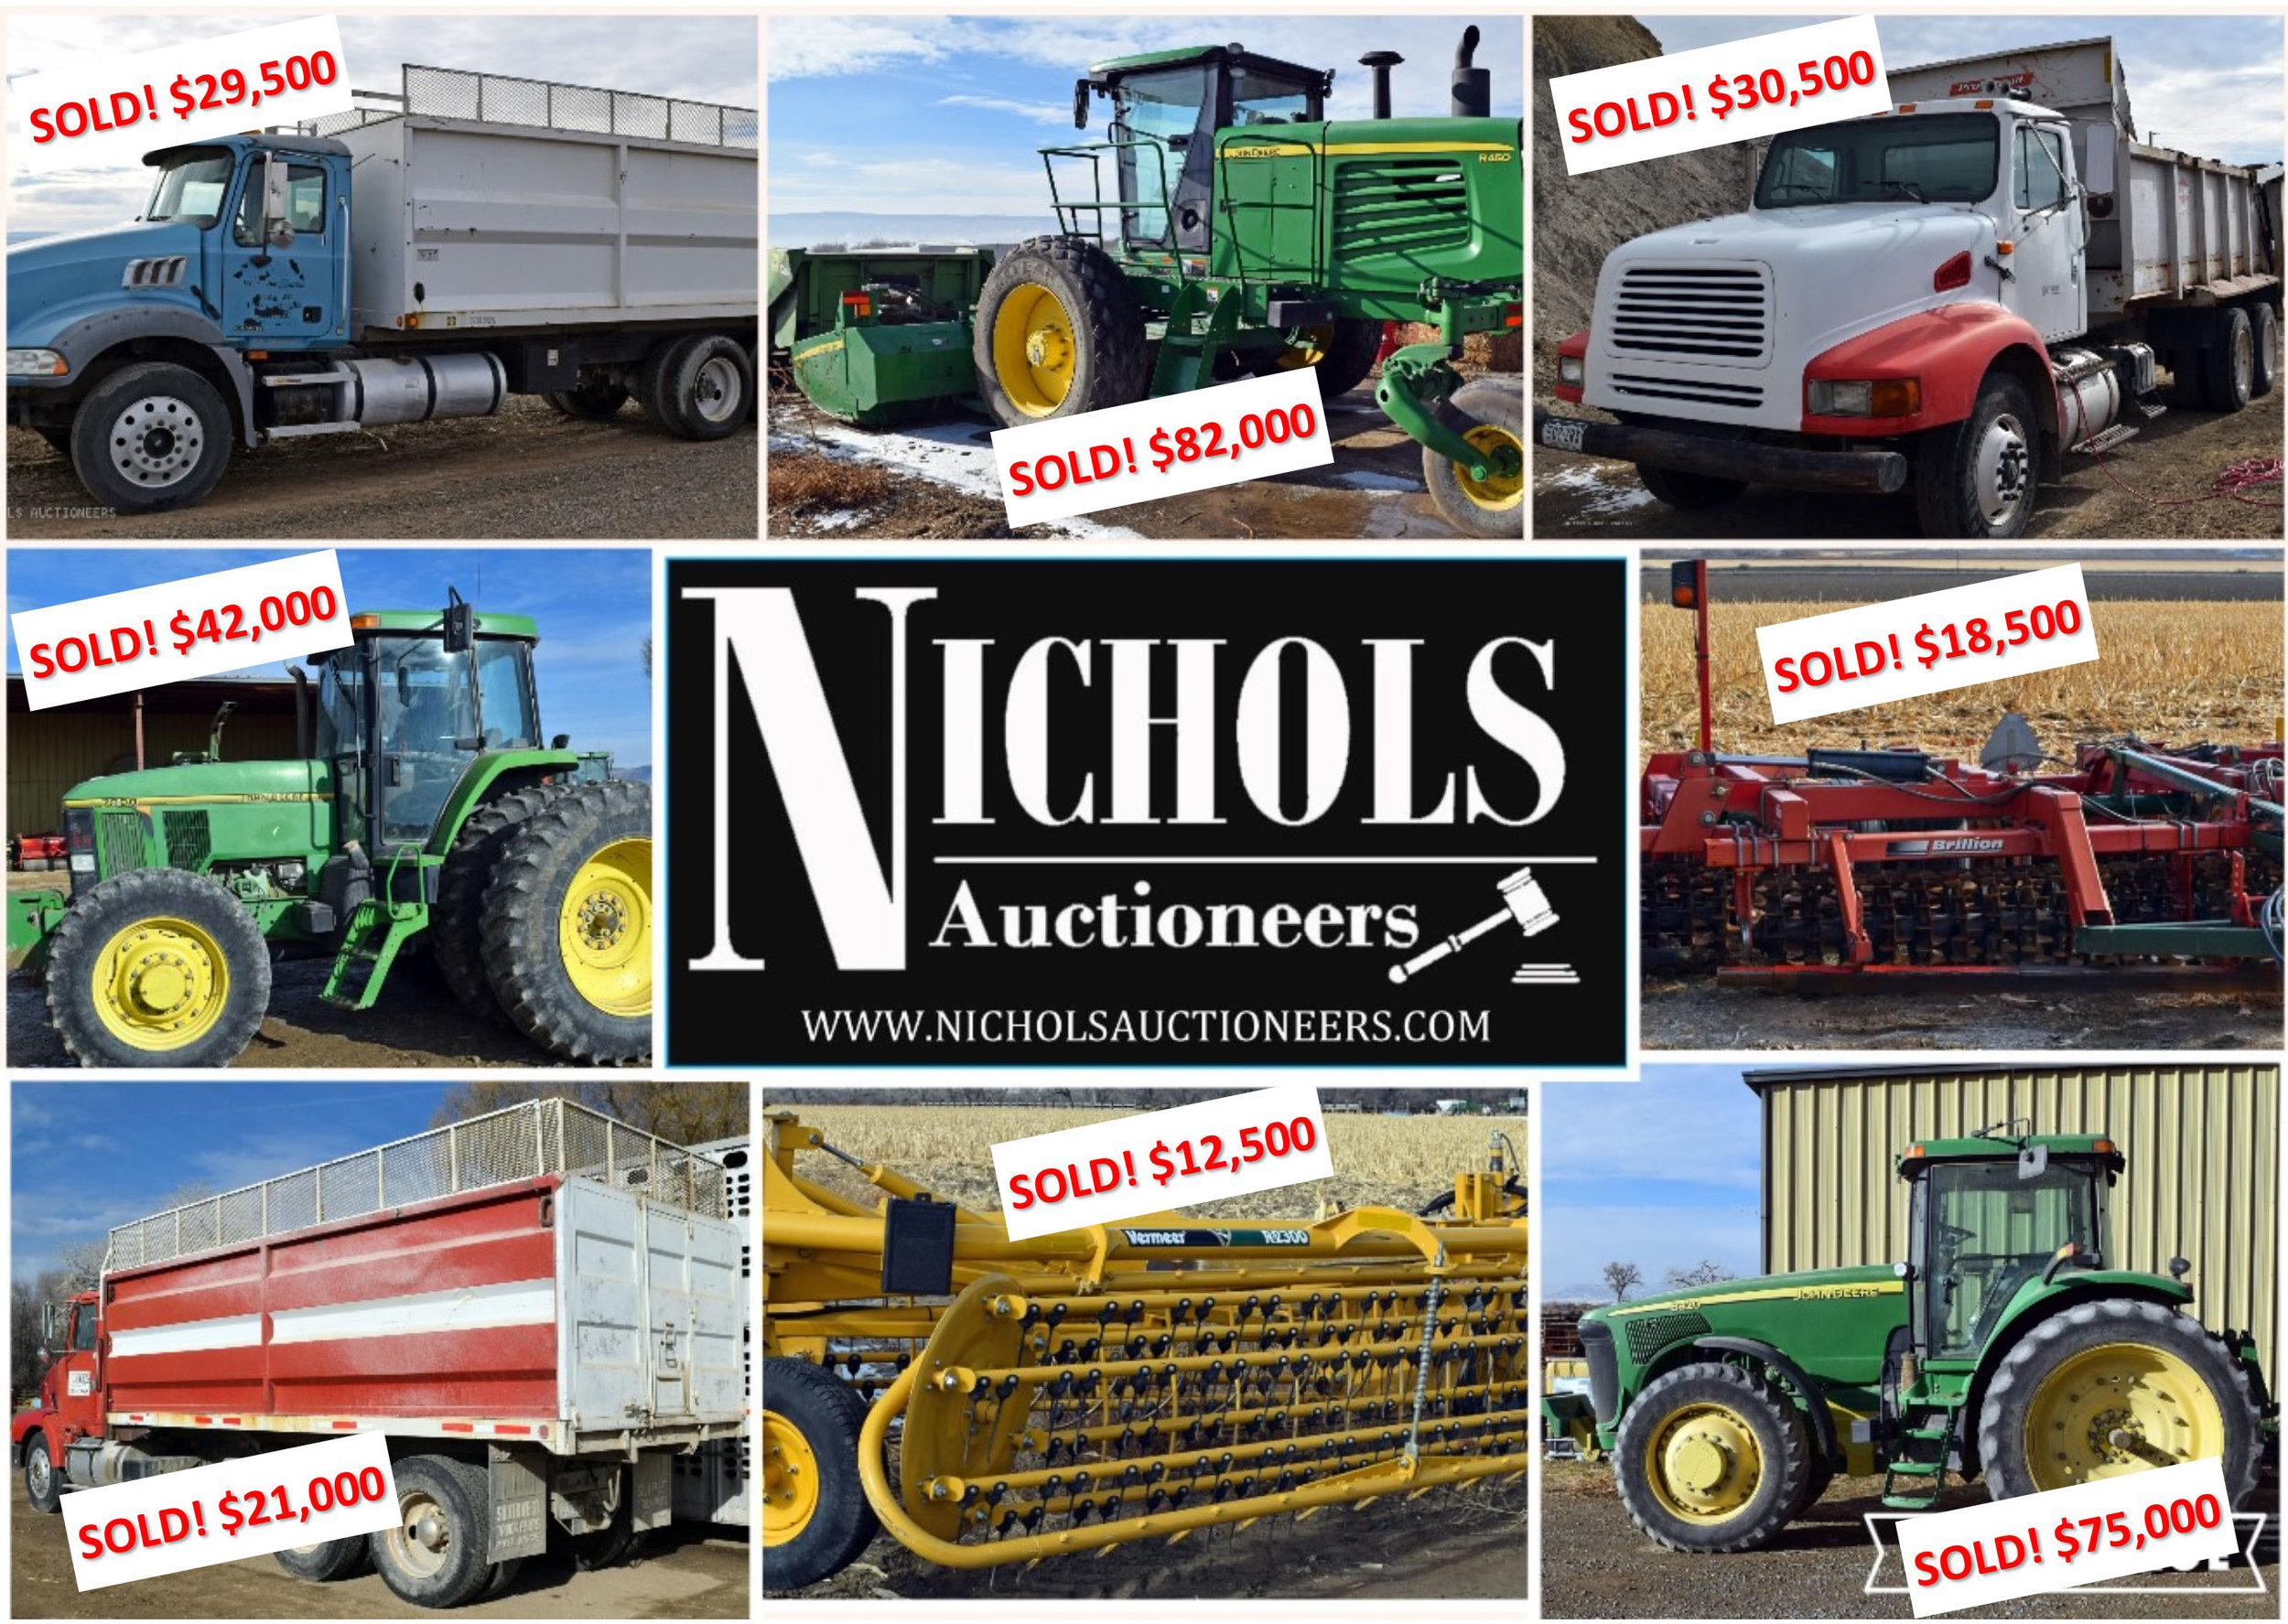 SOLD! By Nichols Auctioneers in Fruita, CO How can we work for YOU? #AuctionsWork  Contact us today!